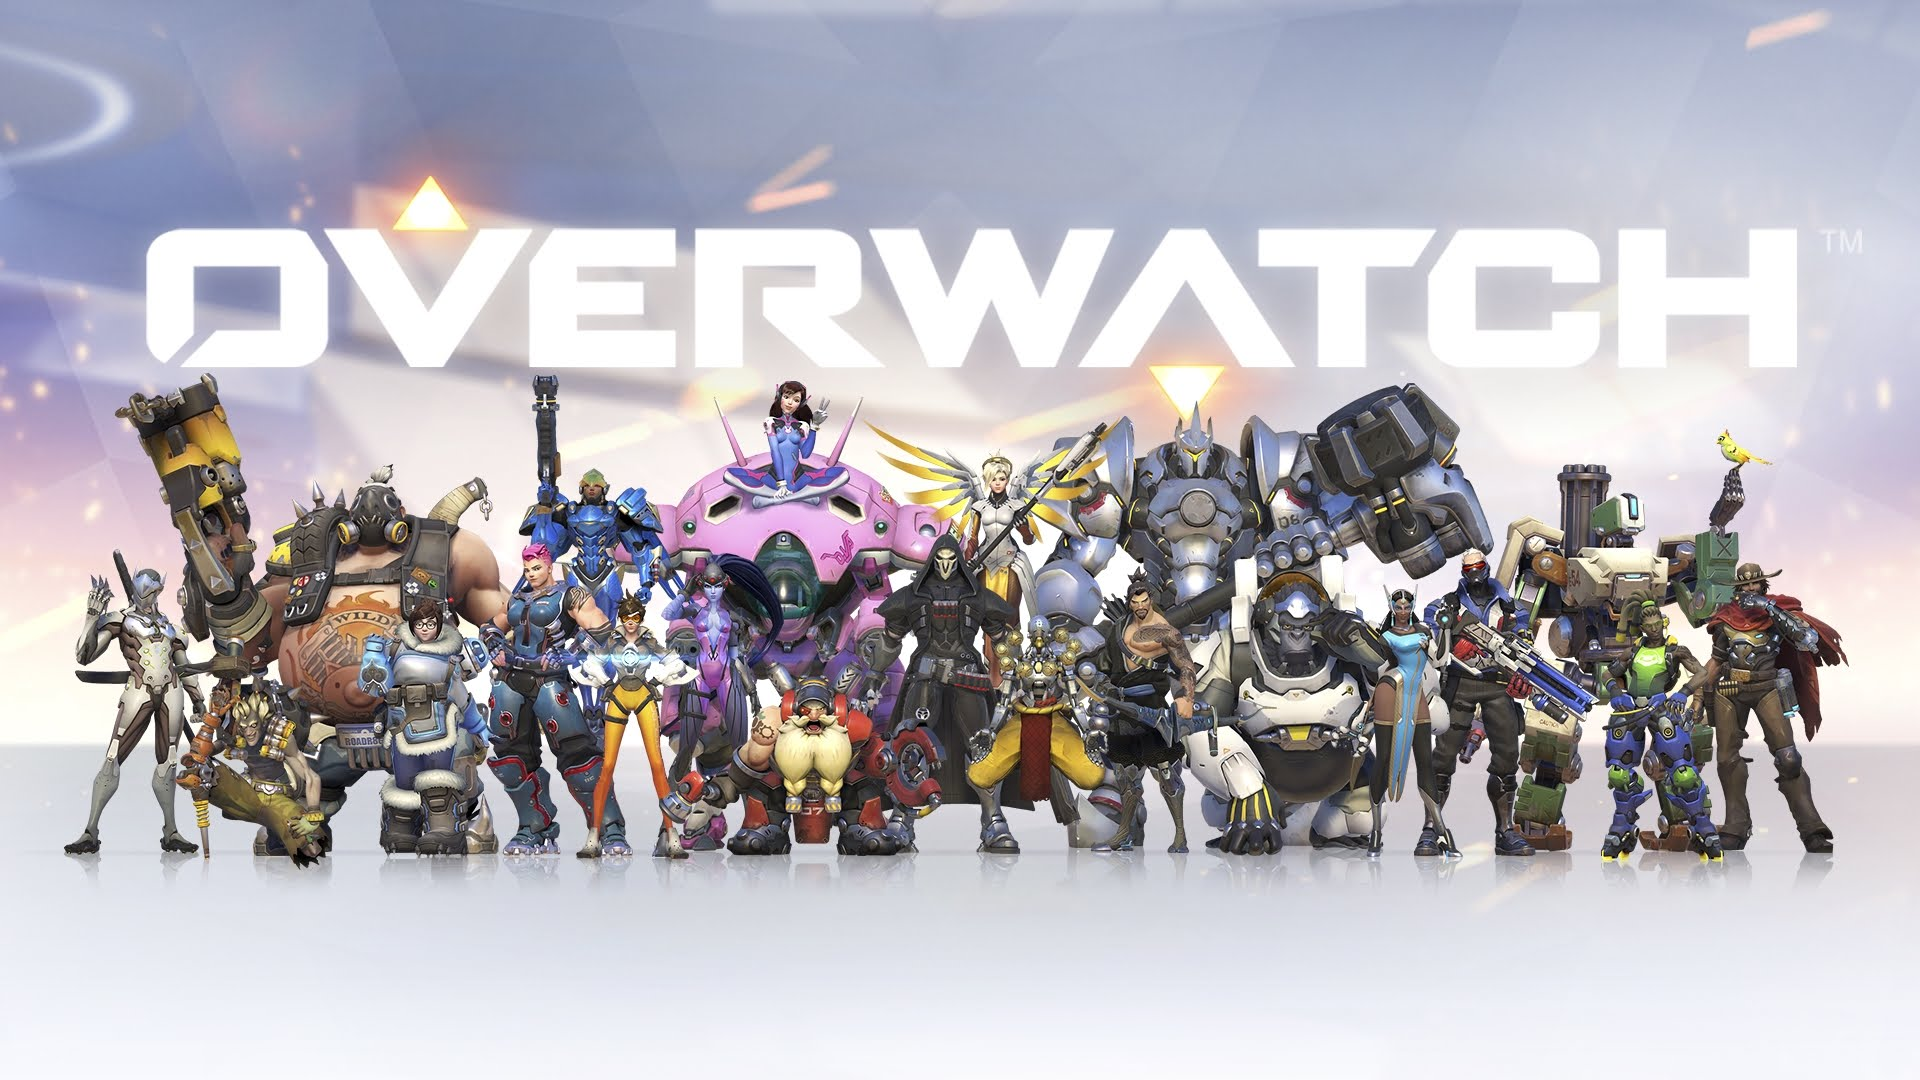 Blizzard now notifies 'Overwatch' players about the players they've reported